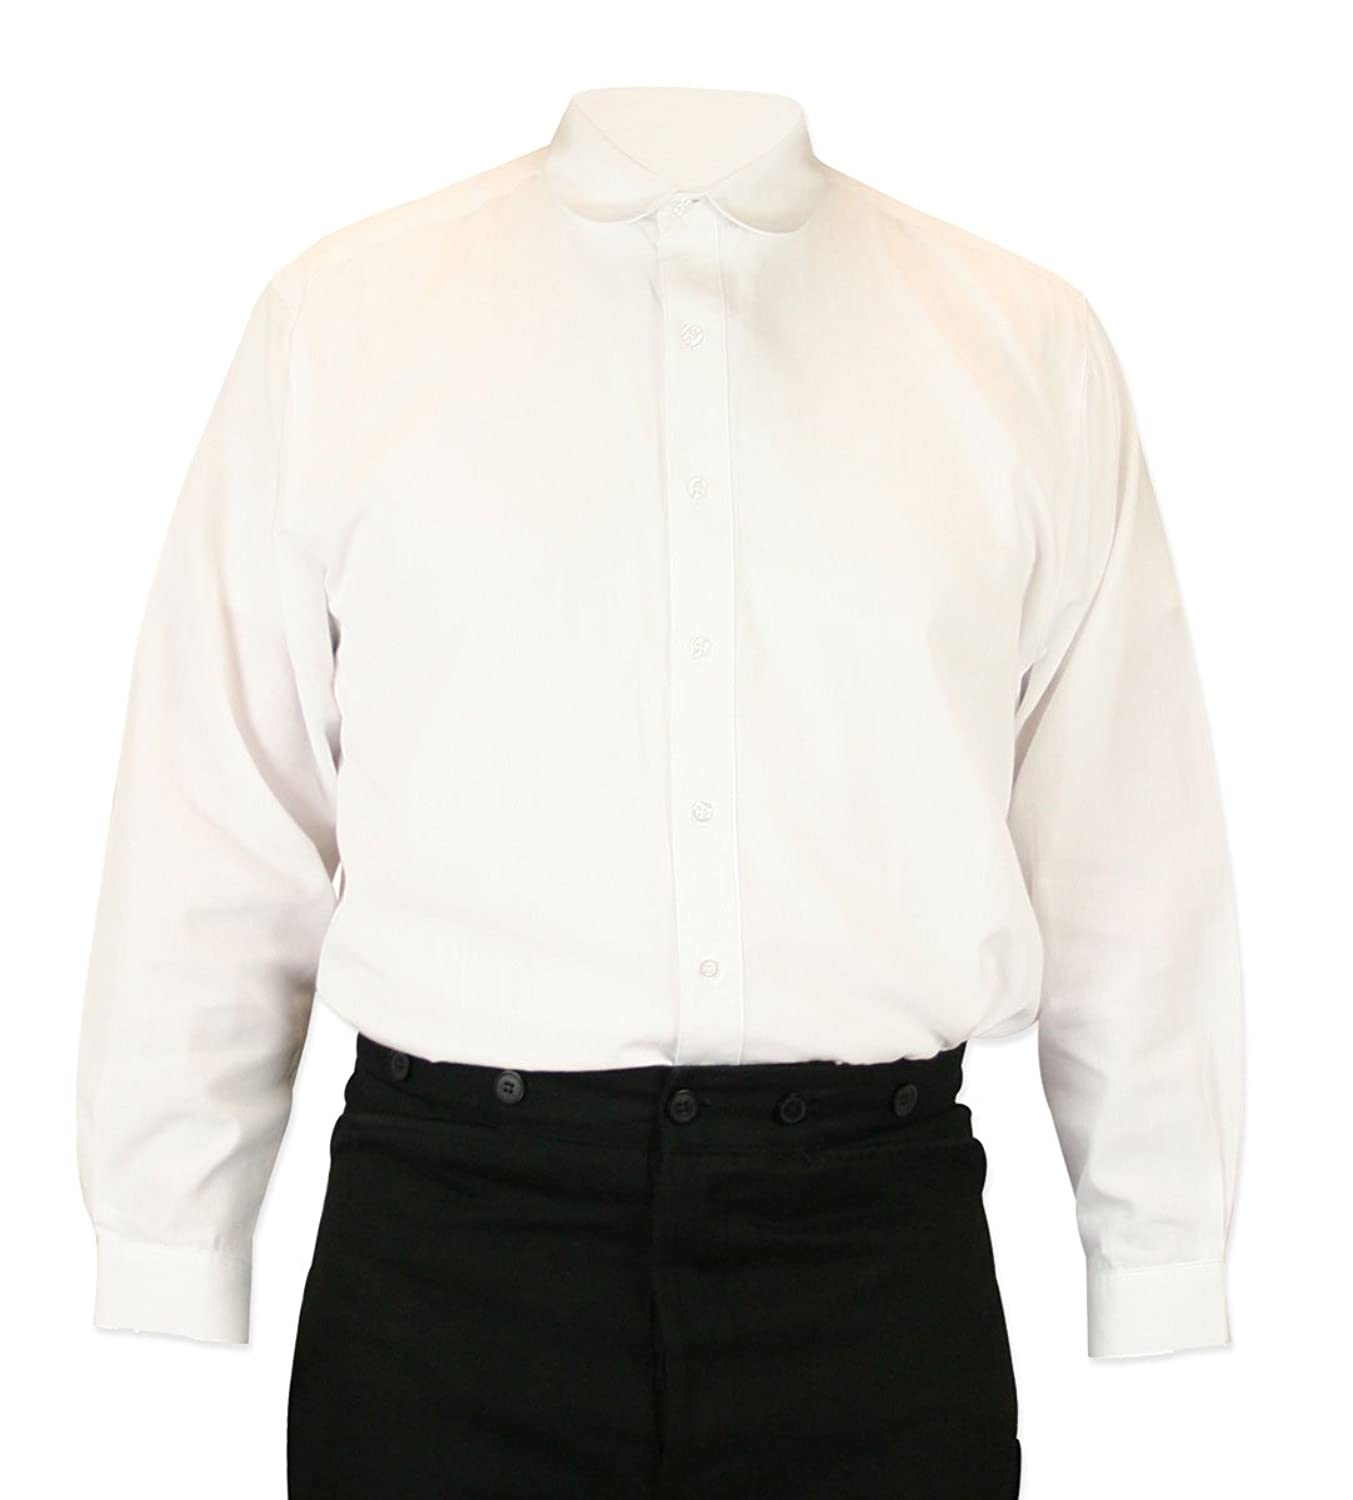 Men's Steampunk Clothing, Costumes, Fashion Virgil Club Collar Dress Shirt $59.95 AT vintagedancer.com